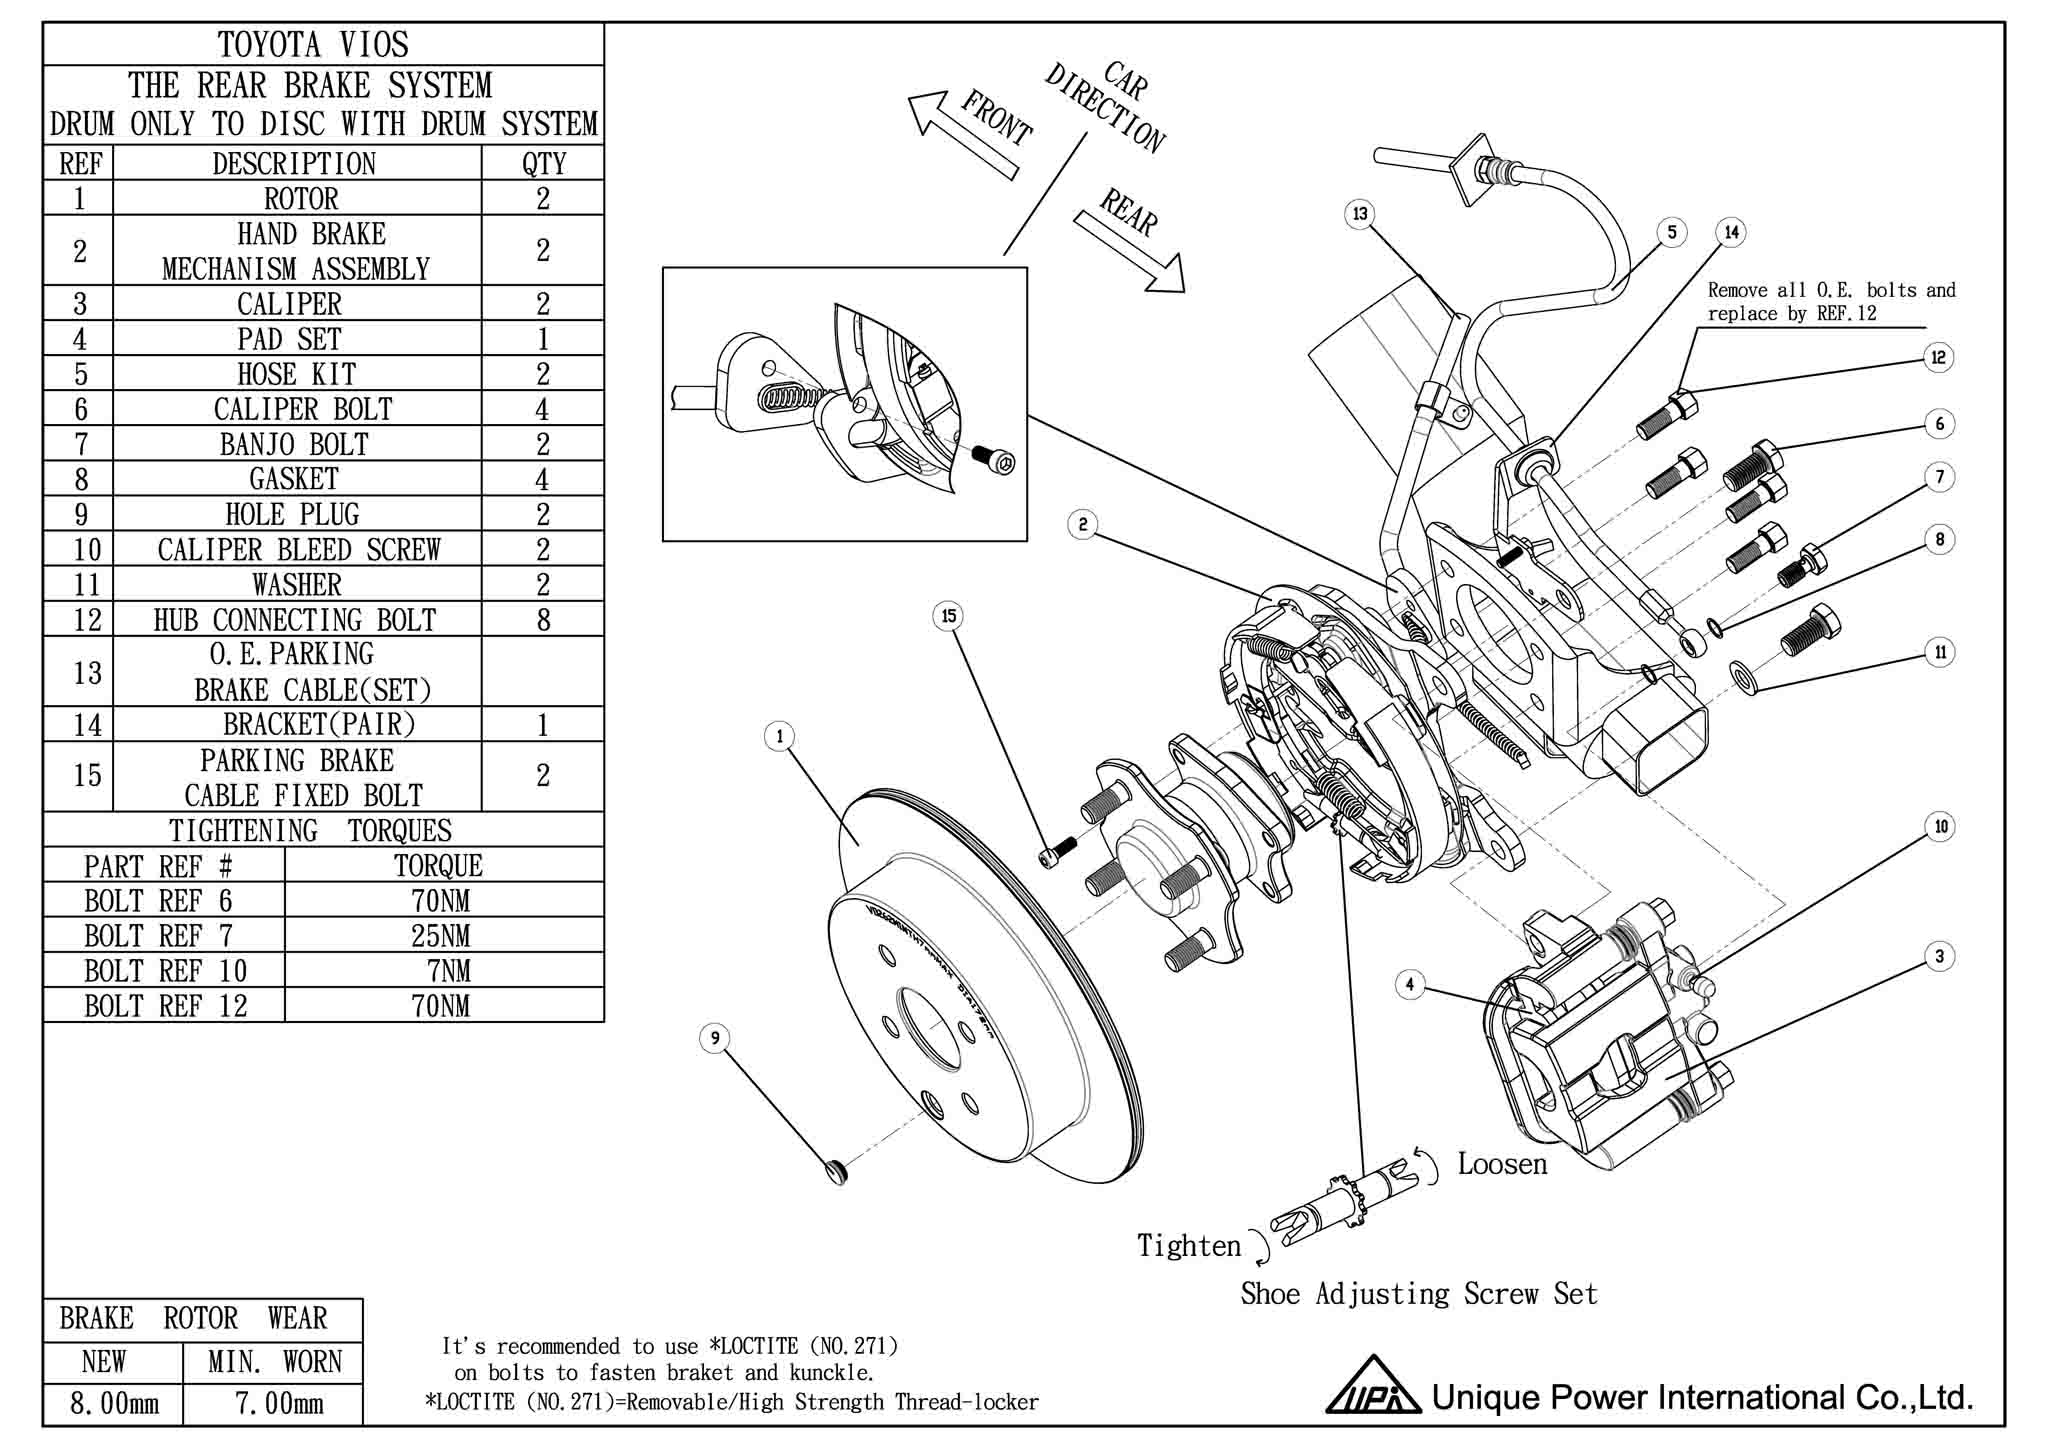 Honda Civic Brake System Diagrams | Wiring Diagram Database